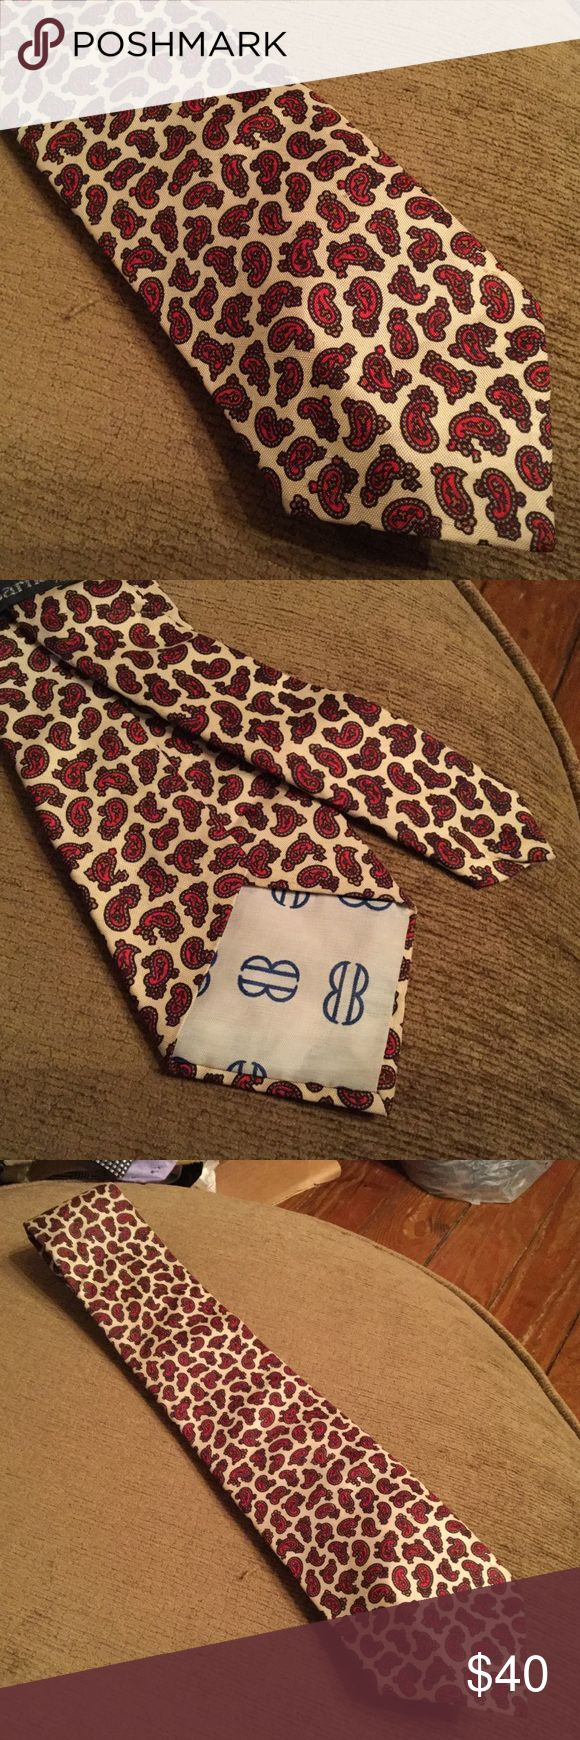 Vintage Bill Blass Men's Tie Red Paisley Barney's Excellent vintage Bills Blass men's tie for Barney's New York Silk Cream background with fancy red paisleys. No holes. No stains on the front. It looks like there is a discoloration on the narrow back side of the tie that wouldn't show when wearing. Bill Blass Accessories Ties